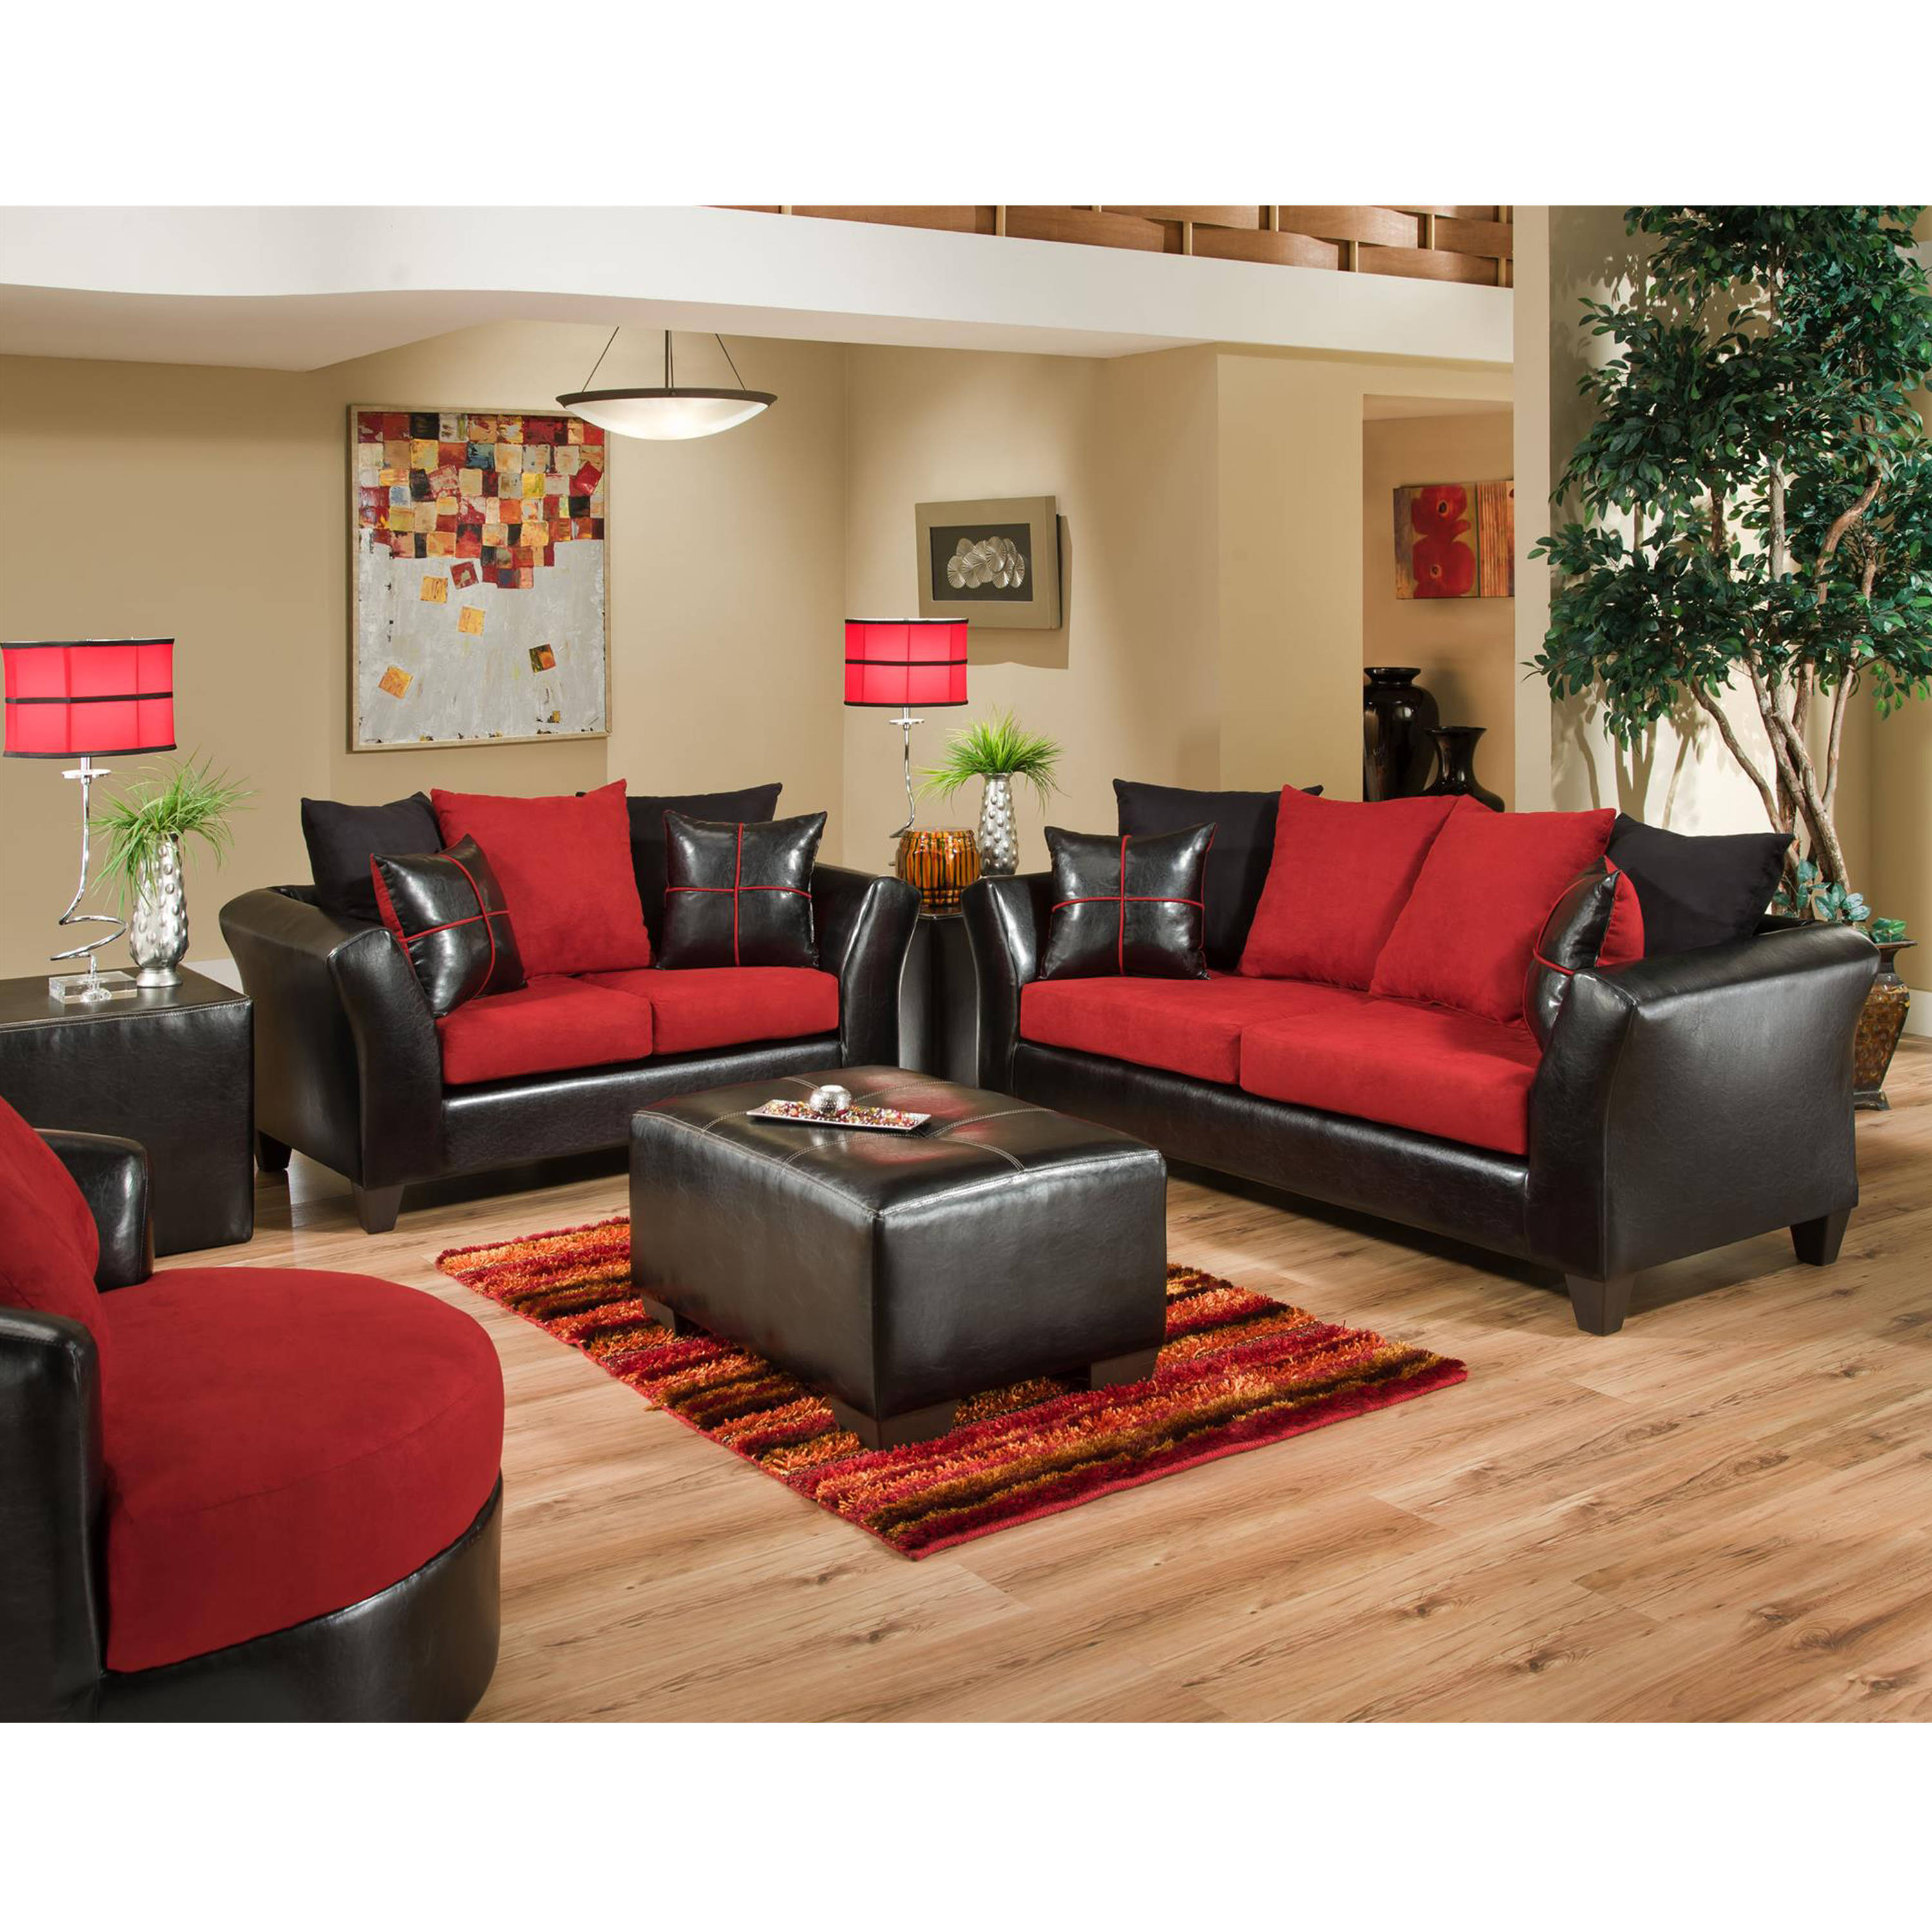 Flash Furniture Riverstone Red Black 2pc Living Room Set | The ...